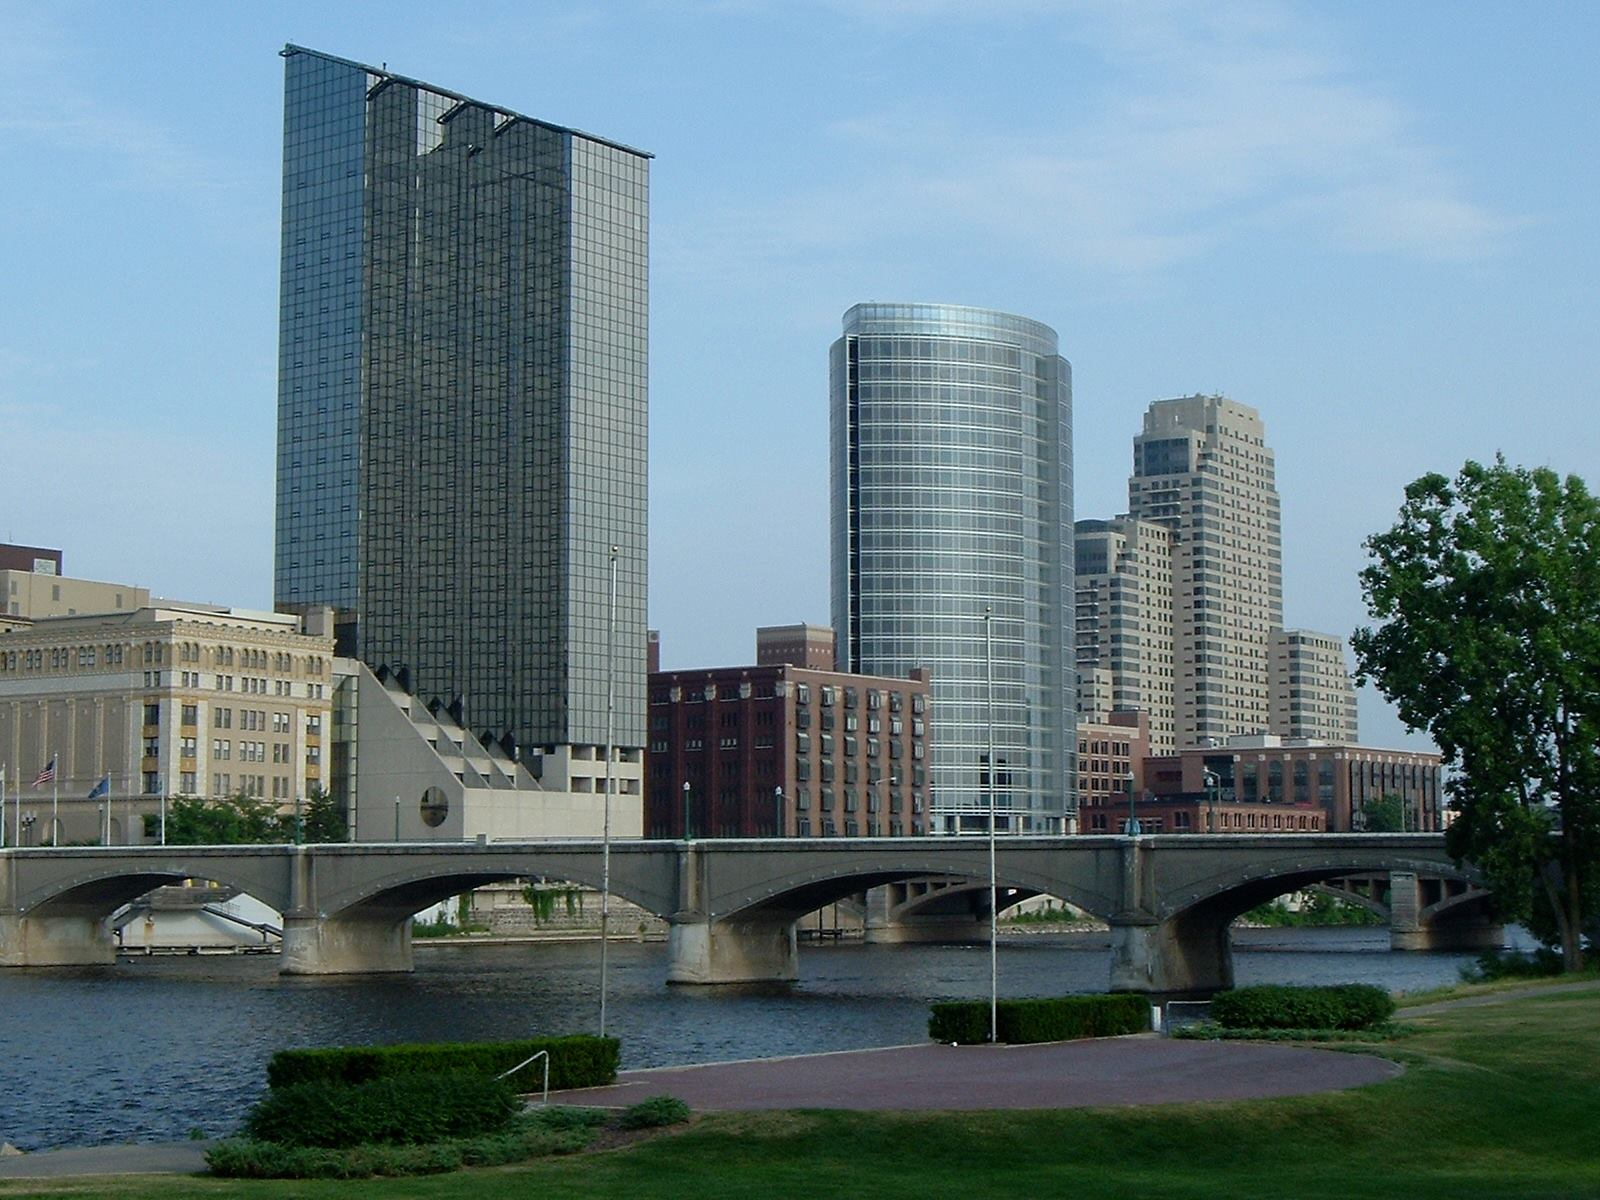 Grand Rapids - QIDP Conference